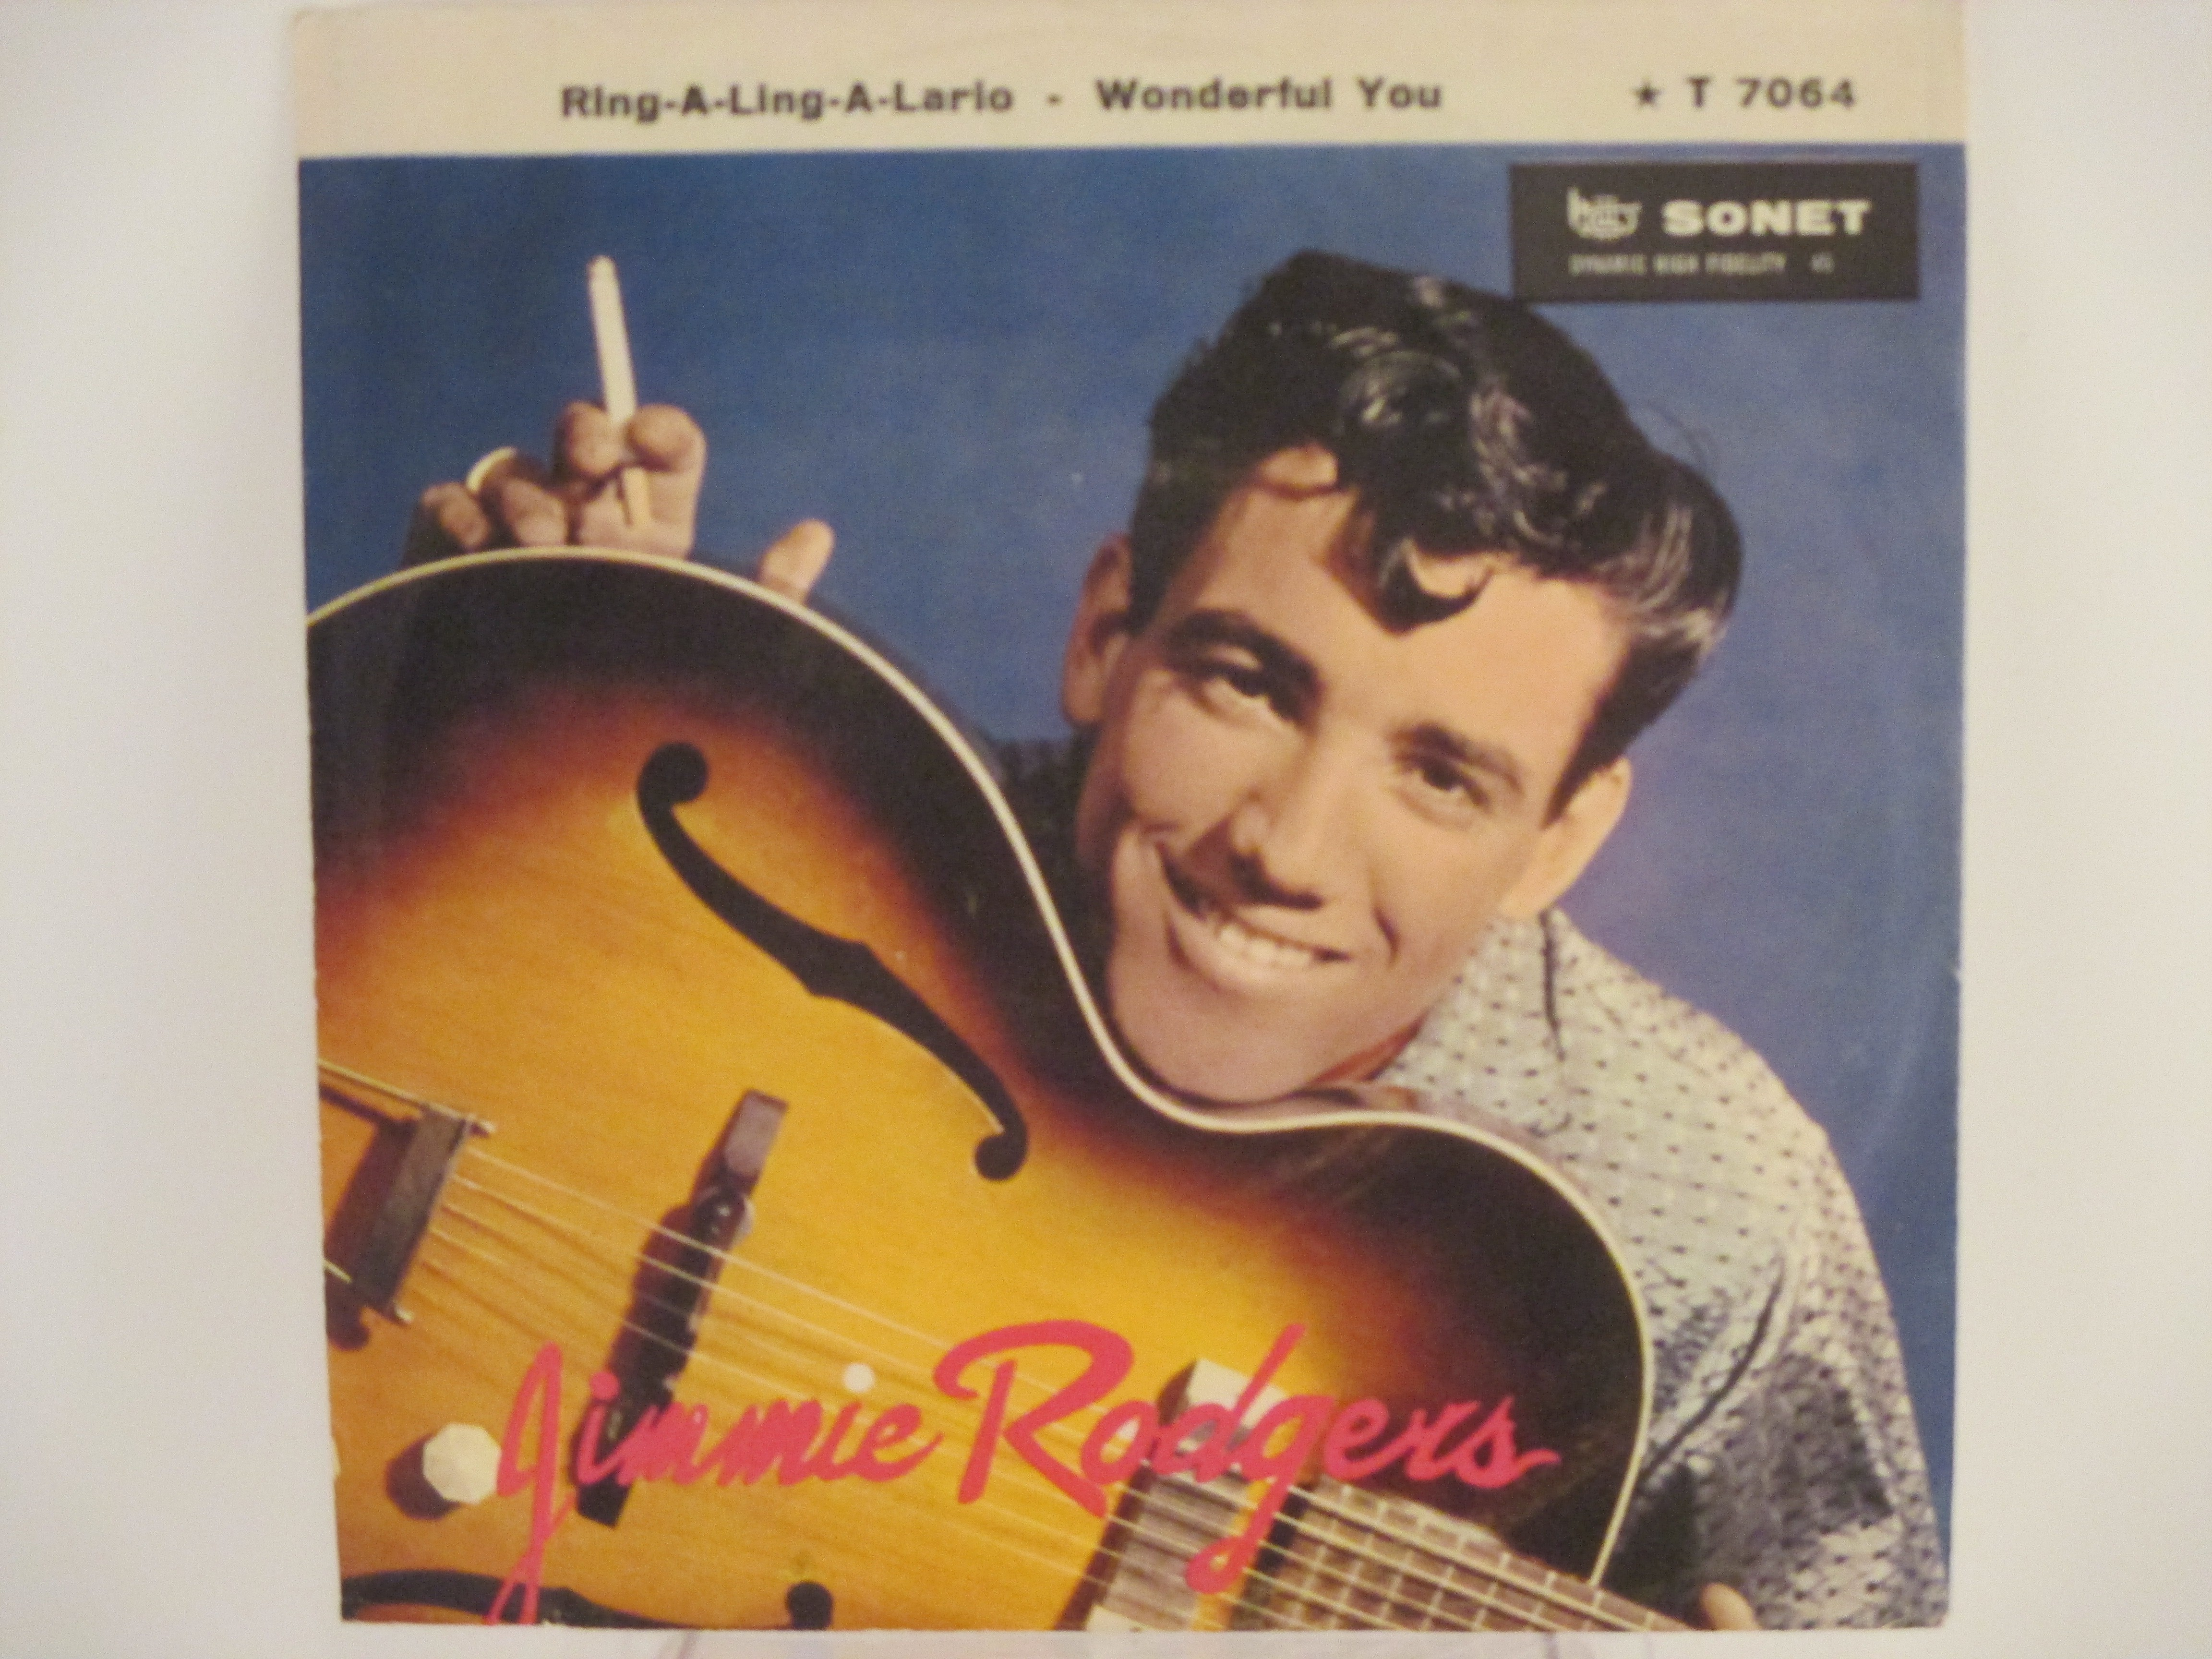 JIMMIE RODGERS : Ring-a-ling-a-lario / Wonderful you